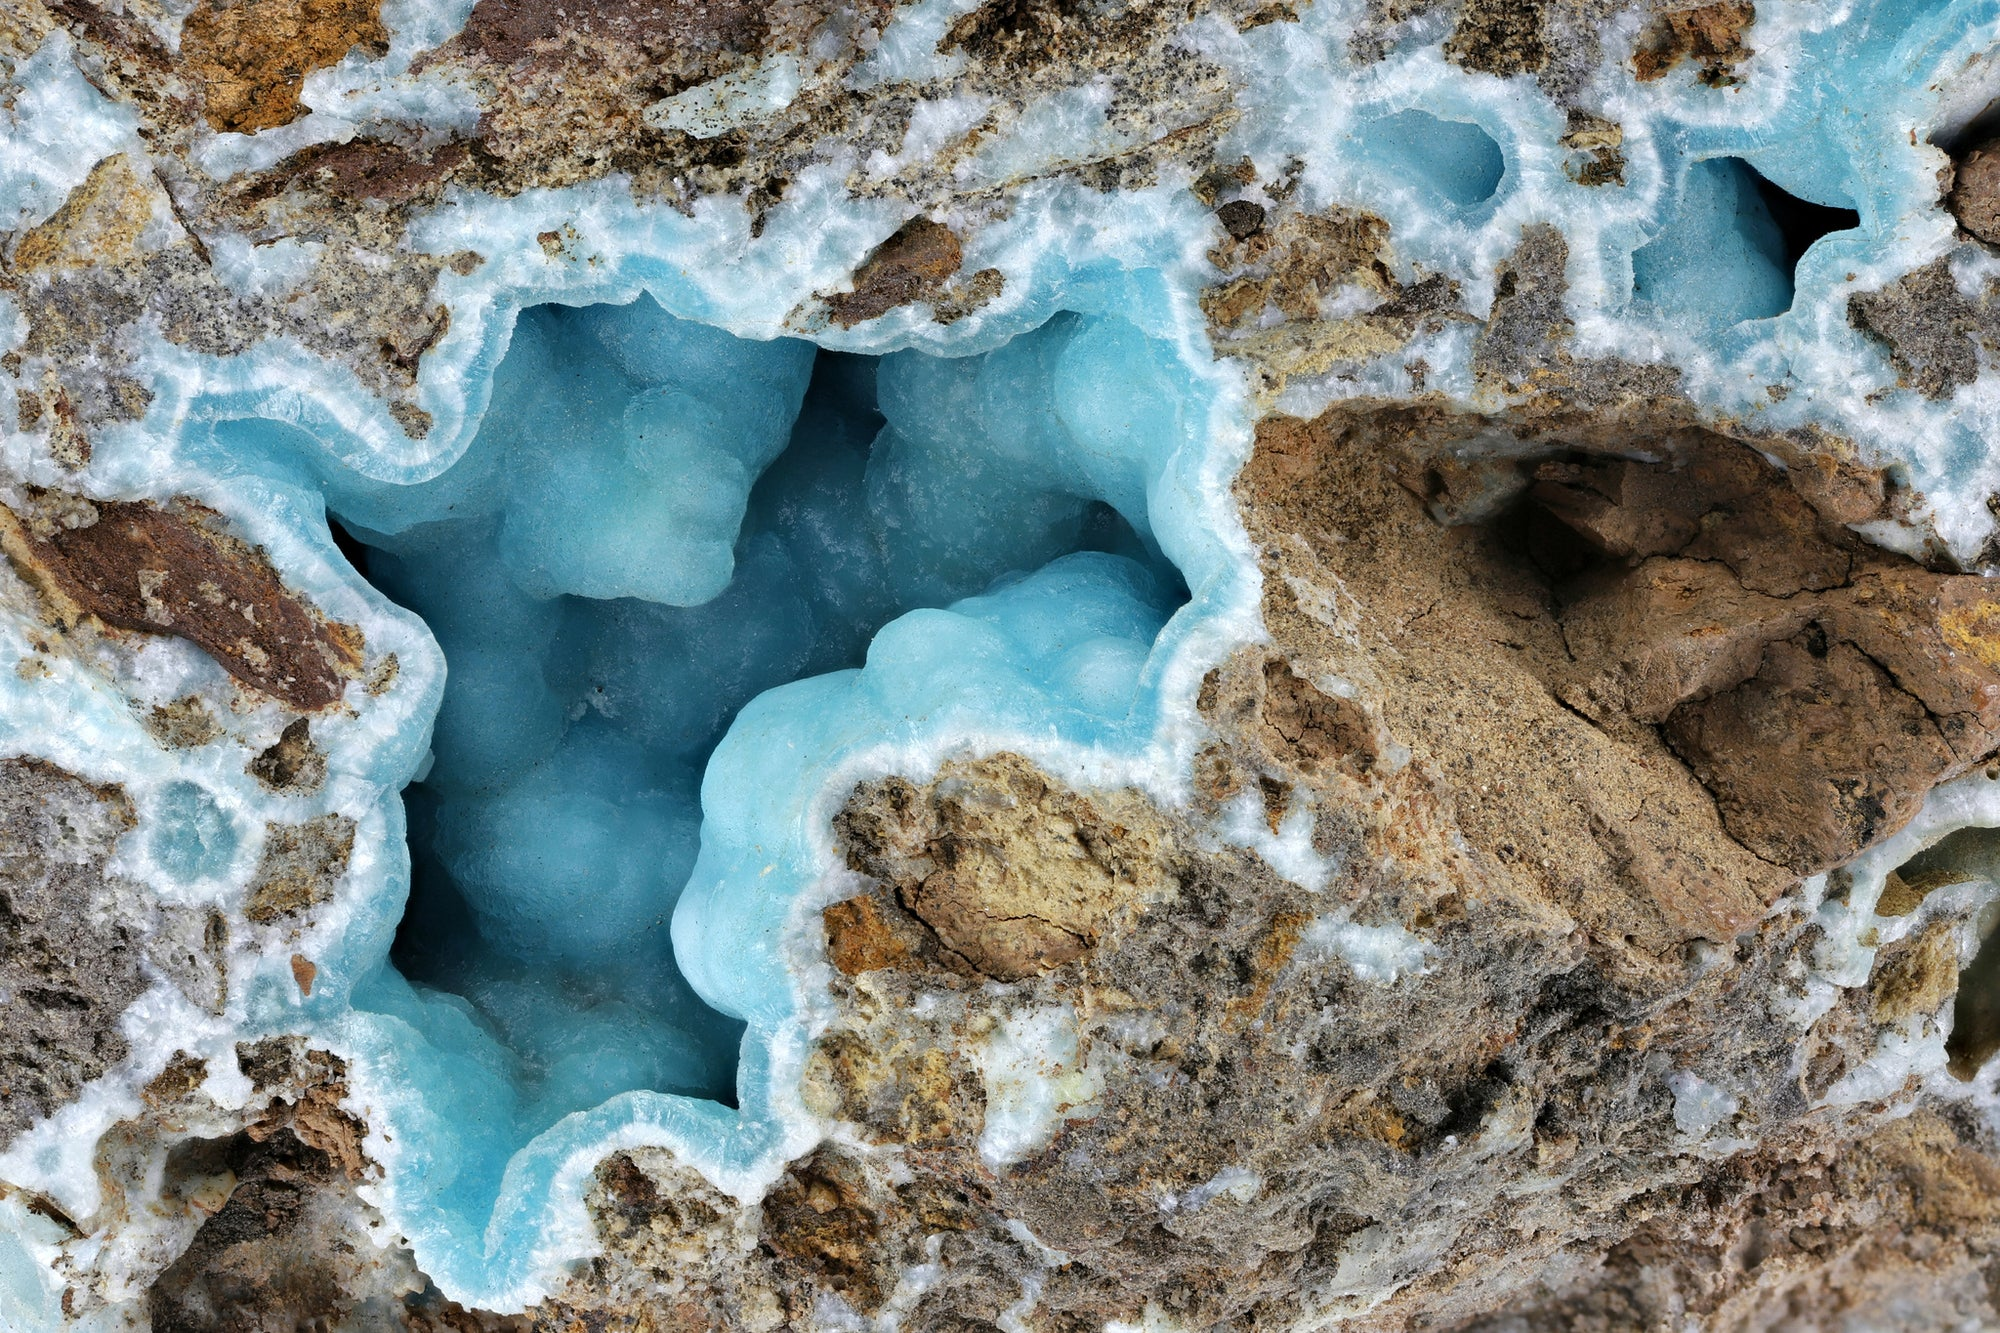 Hemimorphite Stone: History, Formation, & Metaphysical Properties